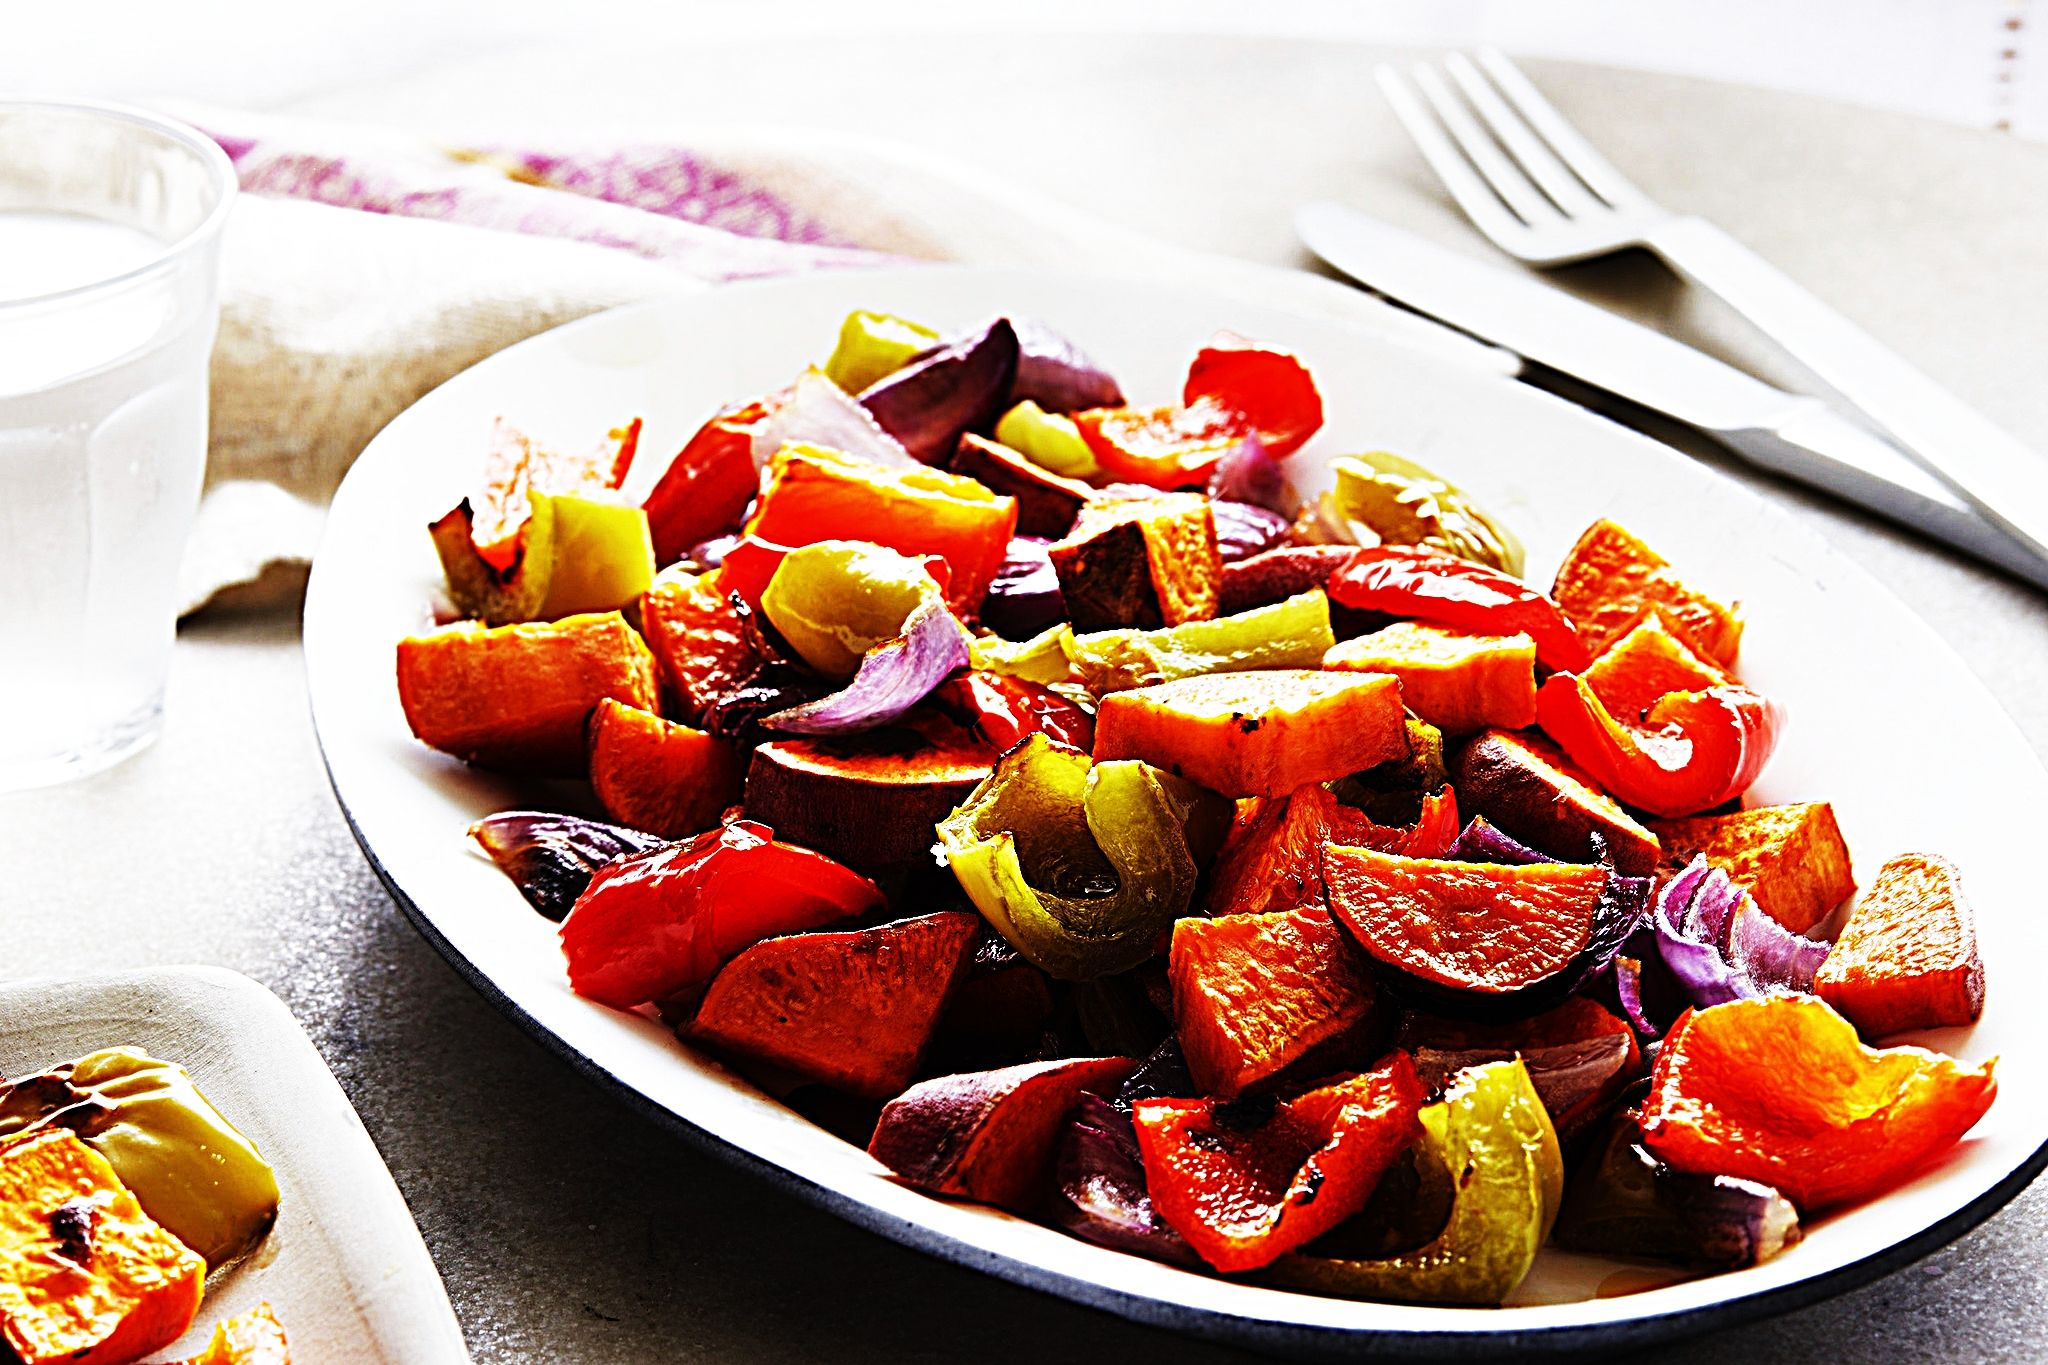 Stupid-Easy Recipe for Easy Oven-Roasted Vegetables (#1 Top-Rated)